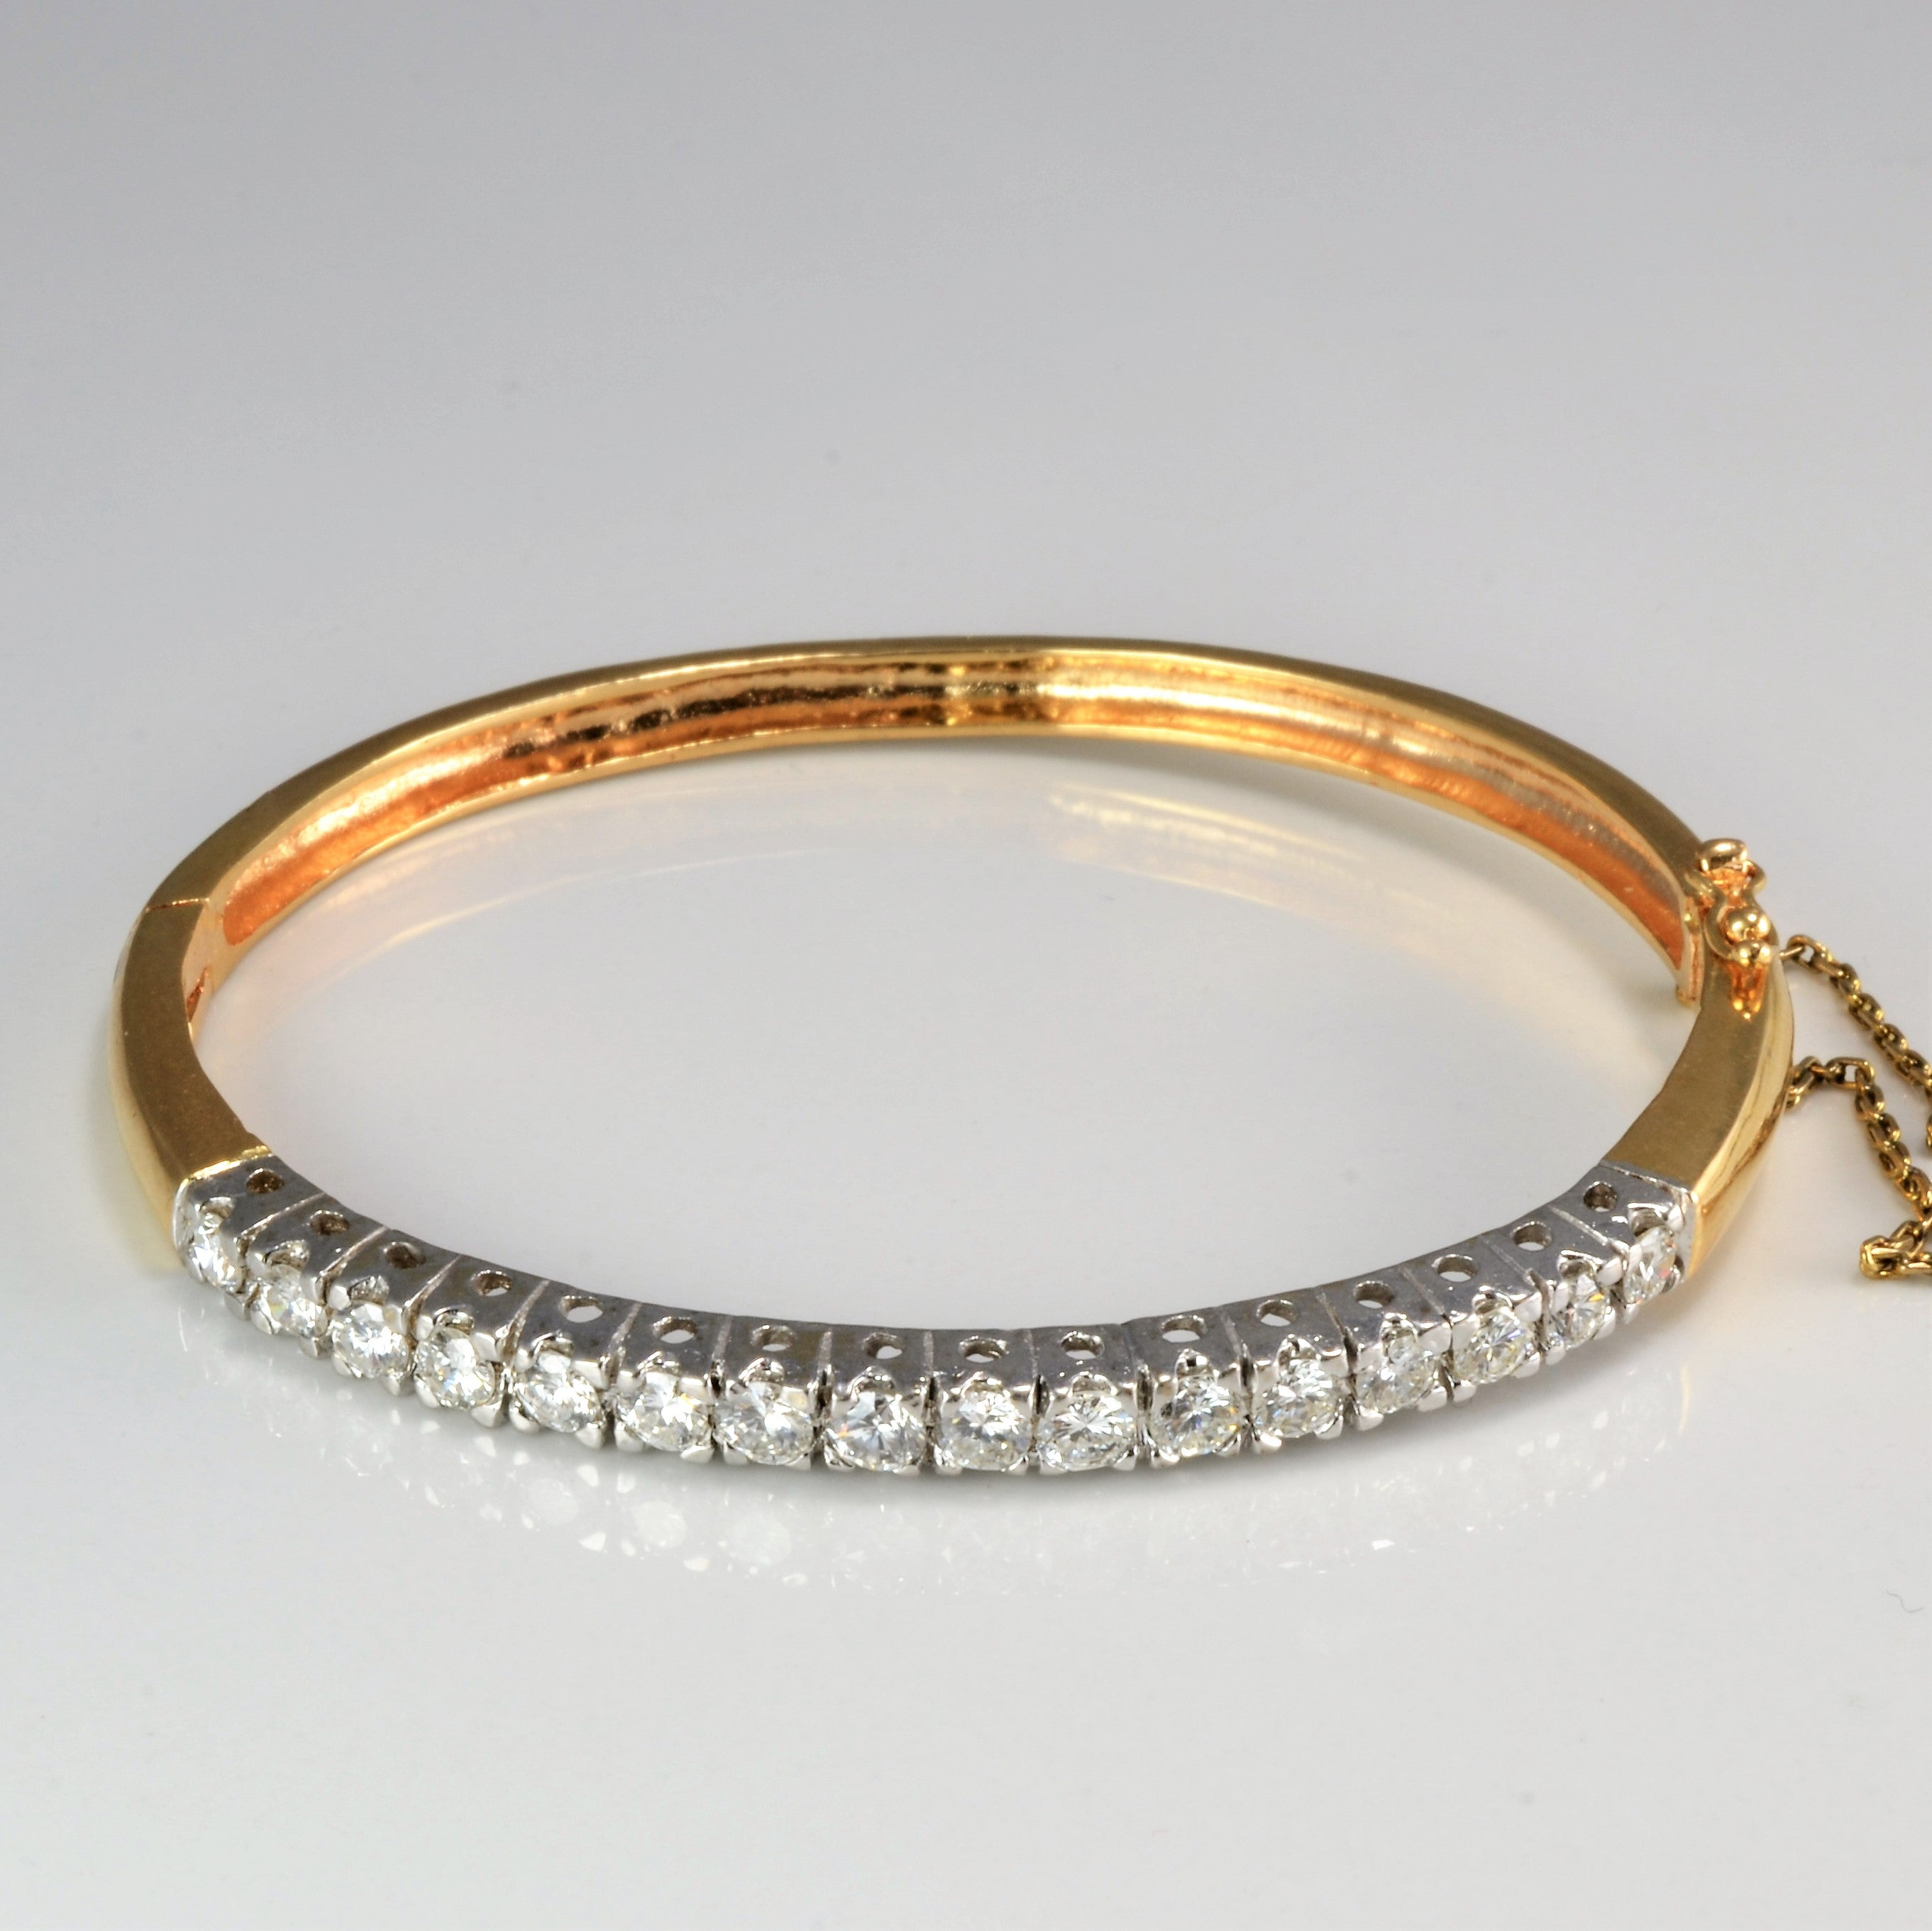 bangles diamond pave bangle iidalx eternity bracelet